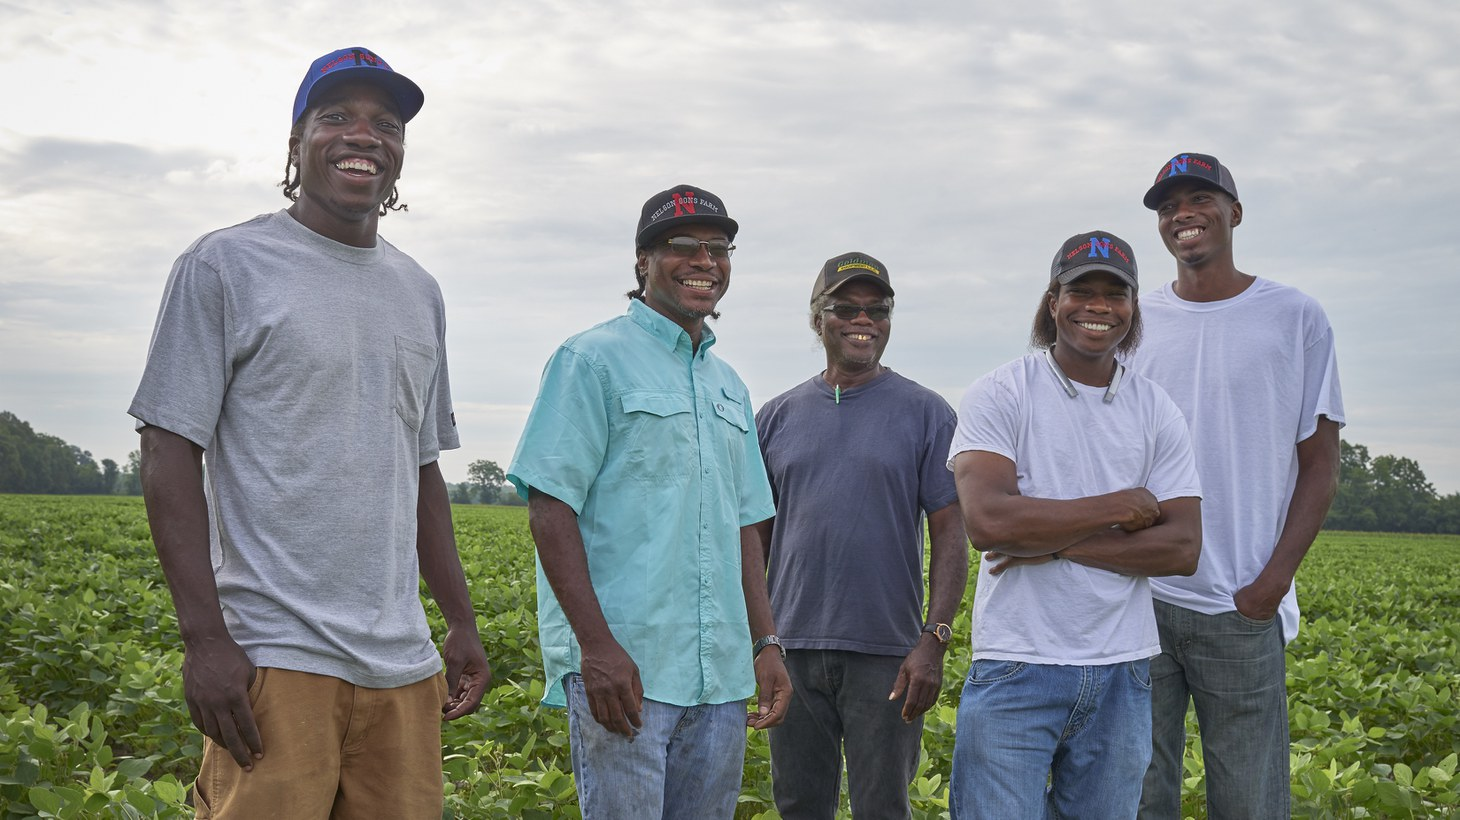 Willie Earl Nelson Sr. (center) and his sons Courtney, Willie Jr., Adrain, and Shaun are farmers in Sondheimer, Louisiana. Mr. Nelson and his son Adrain describe the discrimination and red tape many Black farmers face when obtaining loans for land.